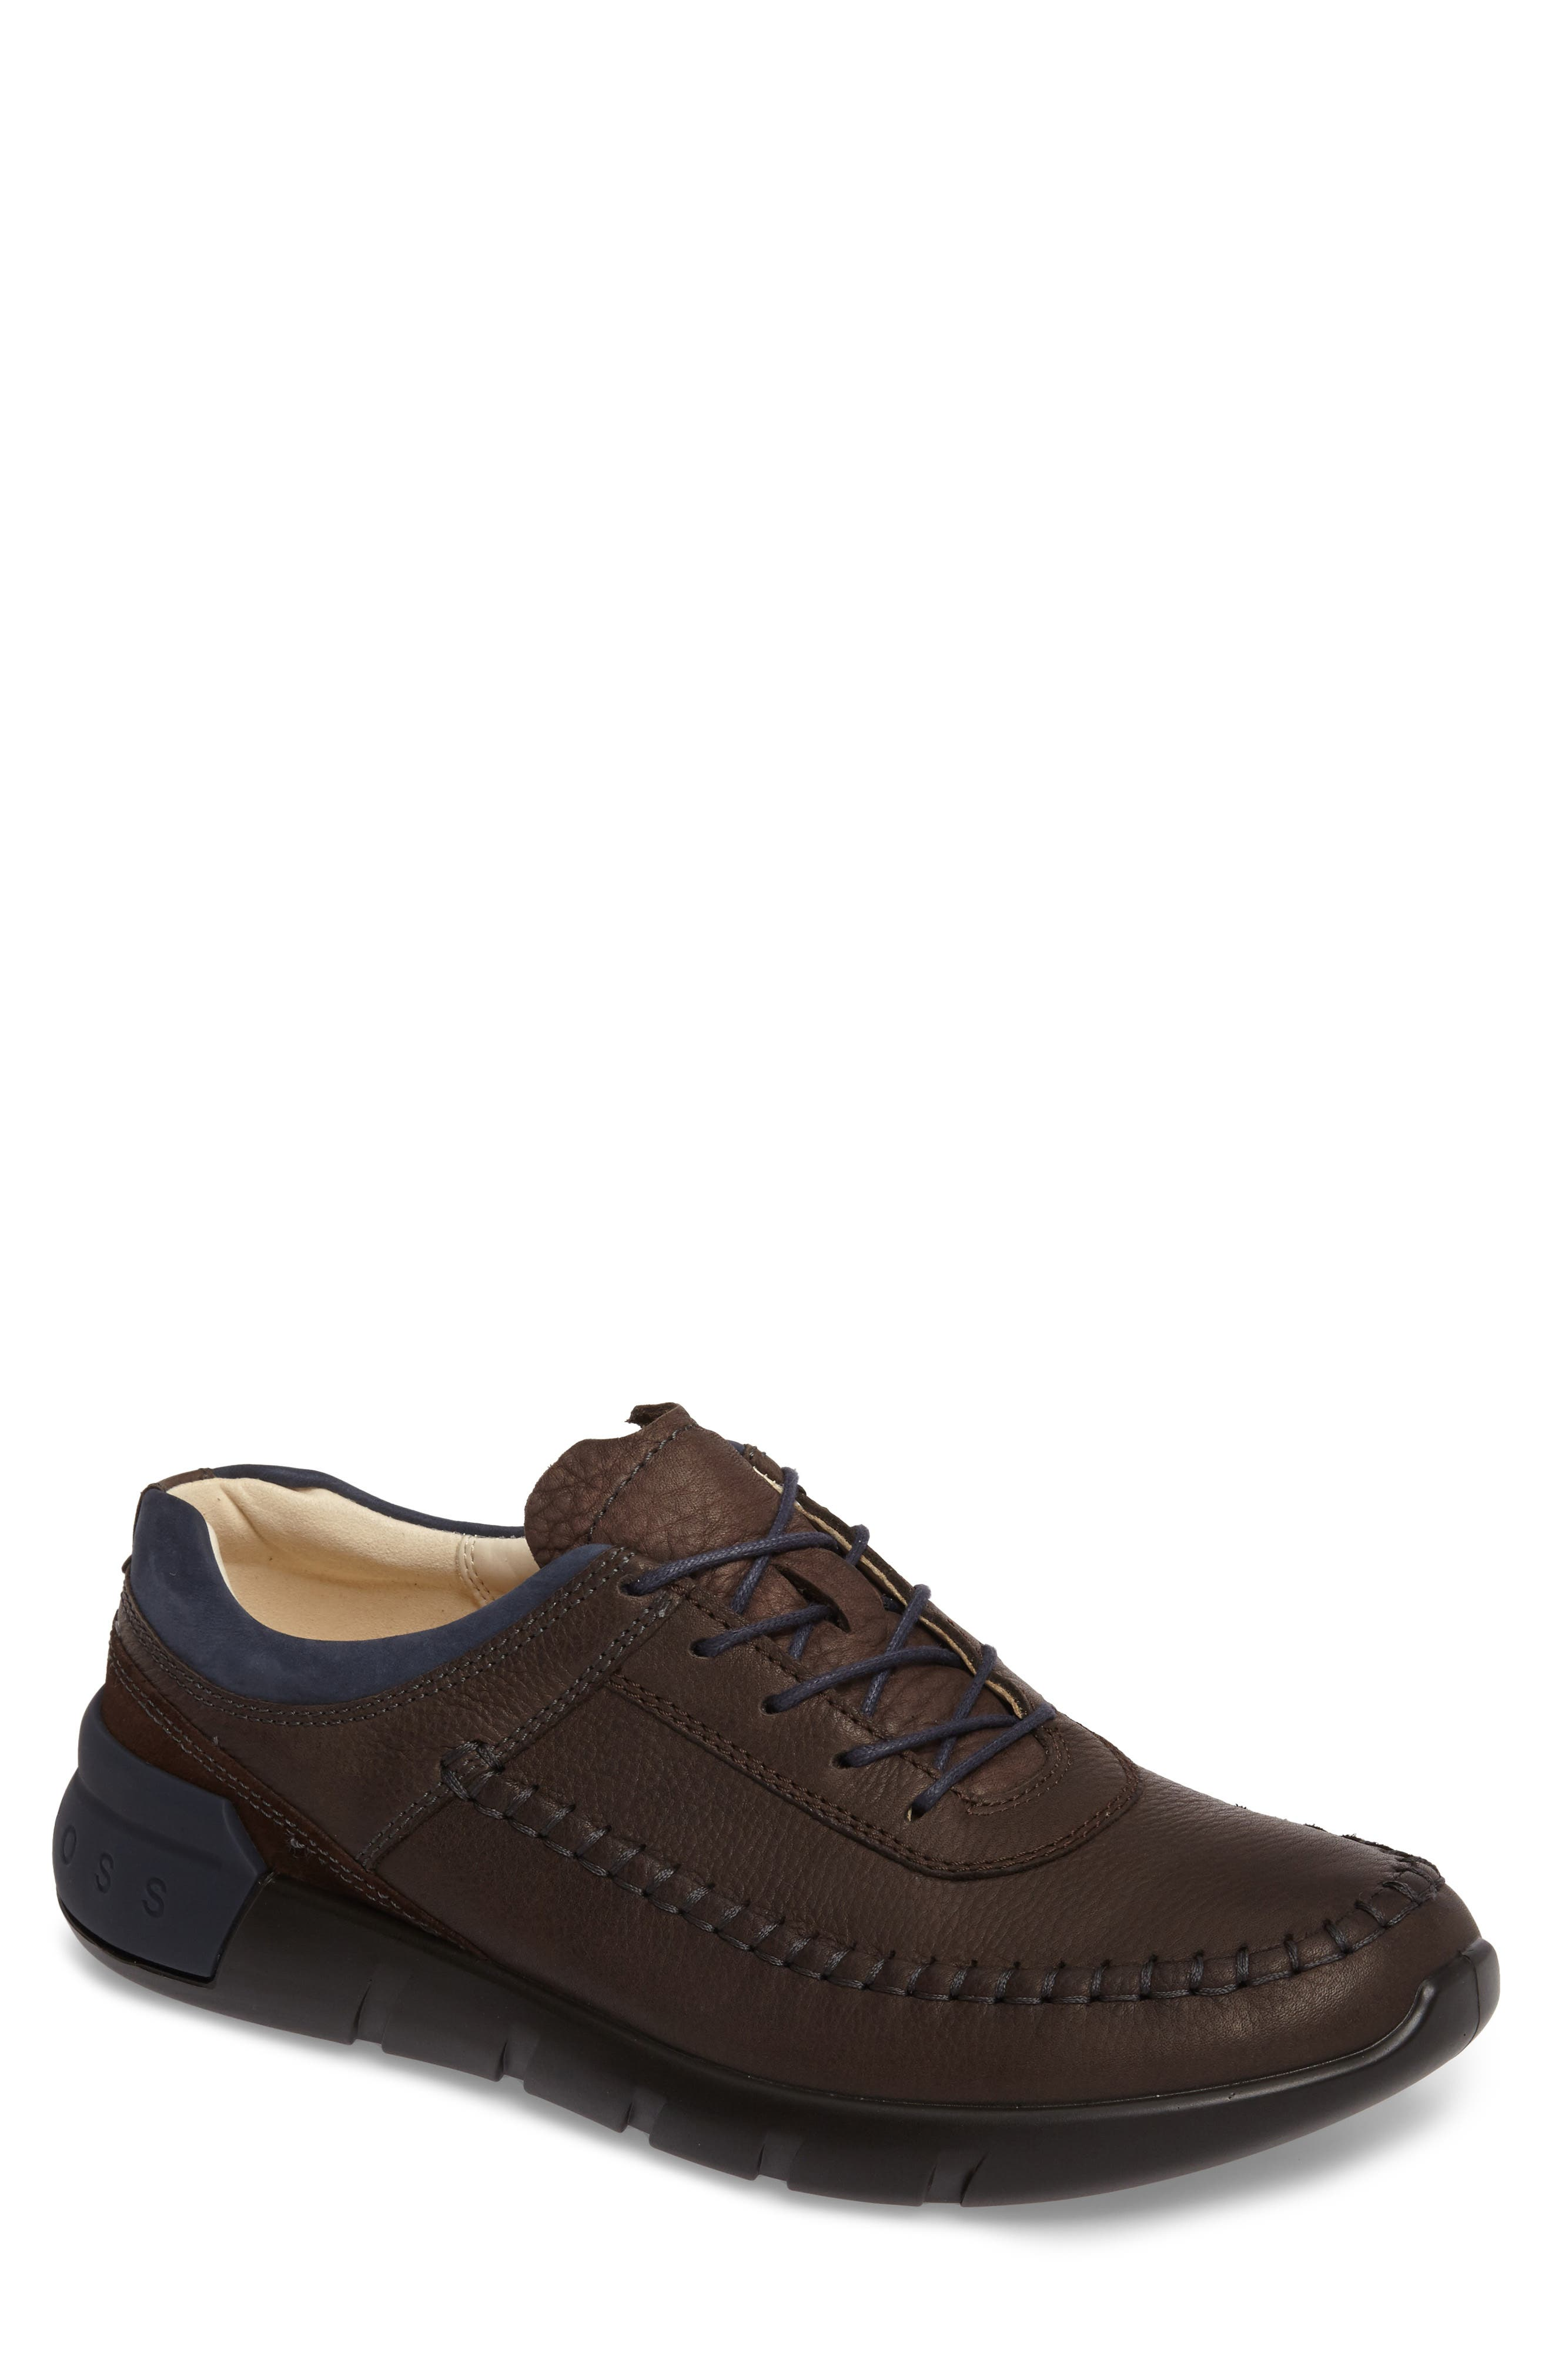 Cross X Classic Sneaker,                             Main thumbnail 1, color,                             Coffee/ Marine Leather